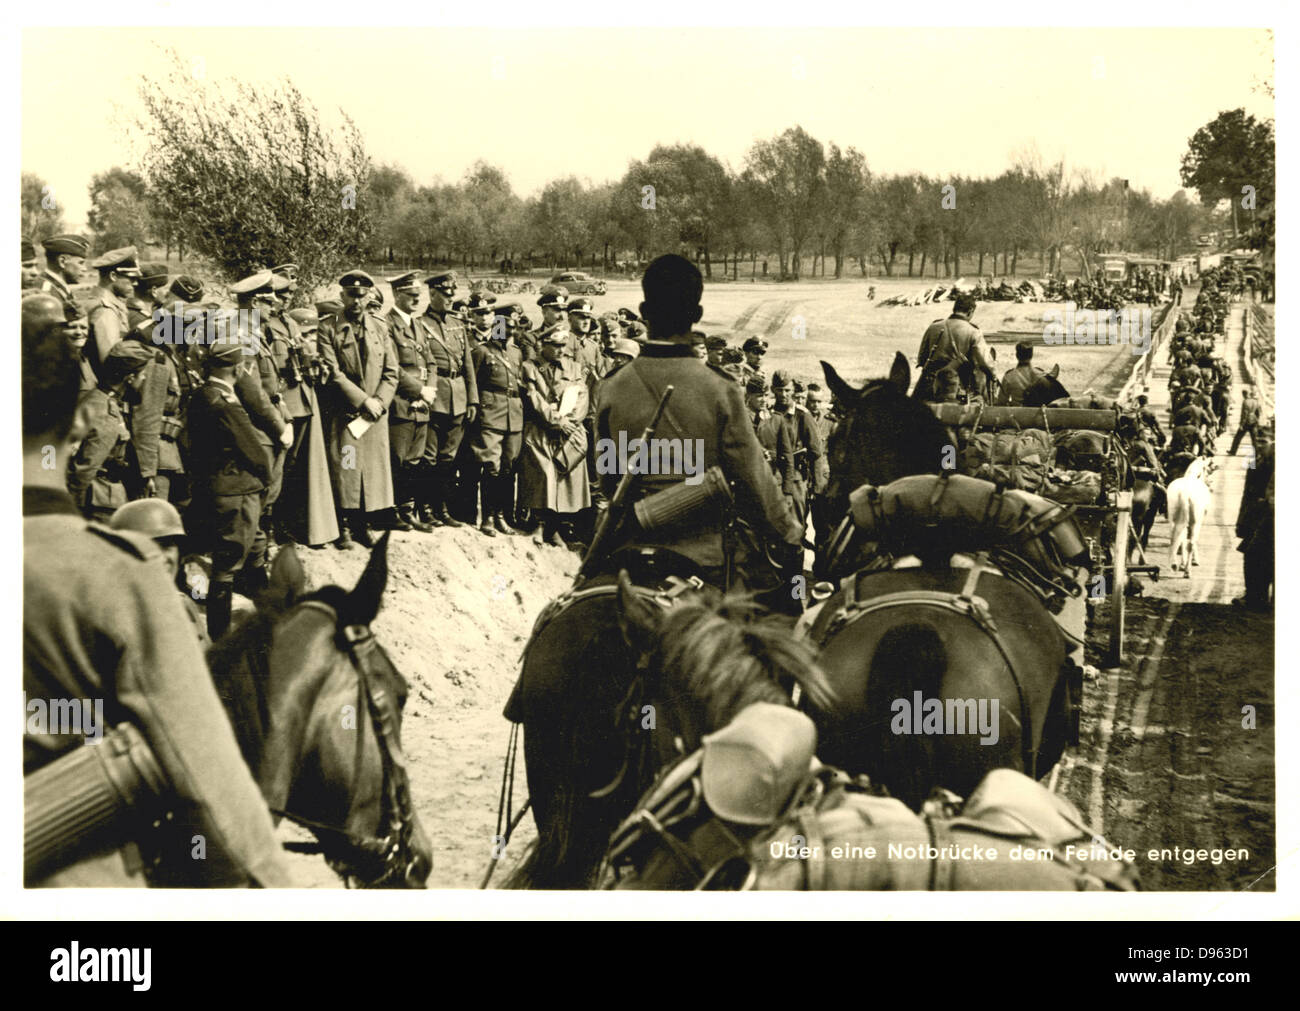 World War 2: German advance into Poland, September 1939. - Stock Image